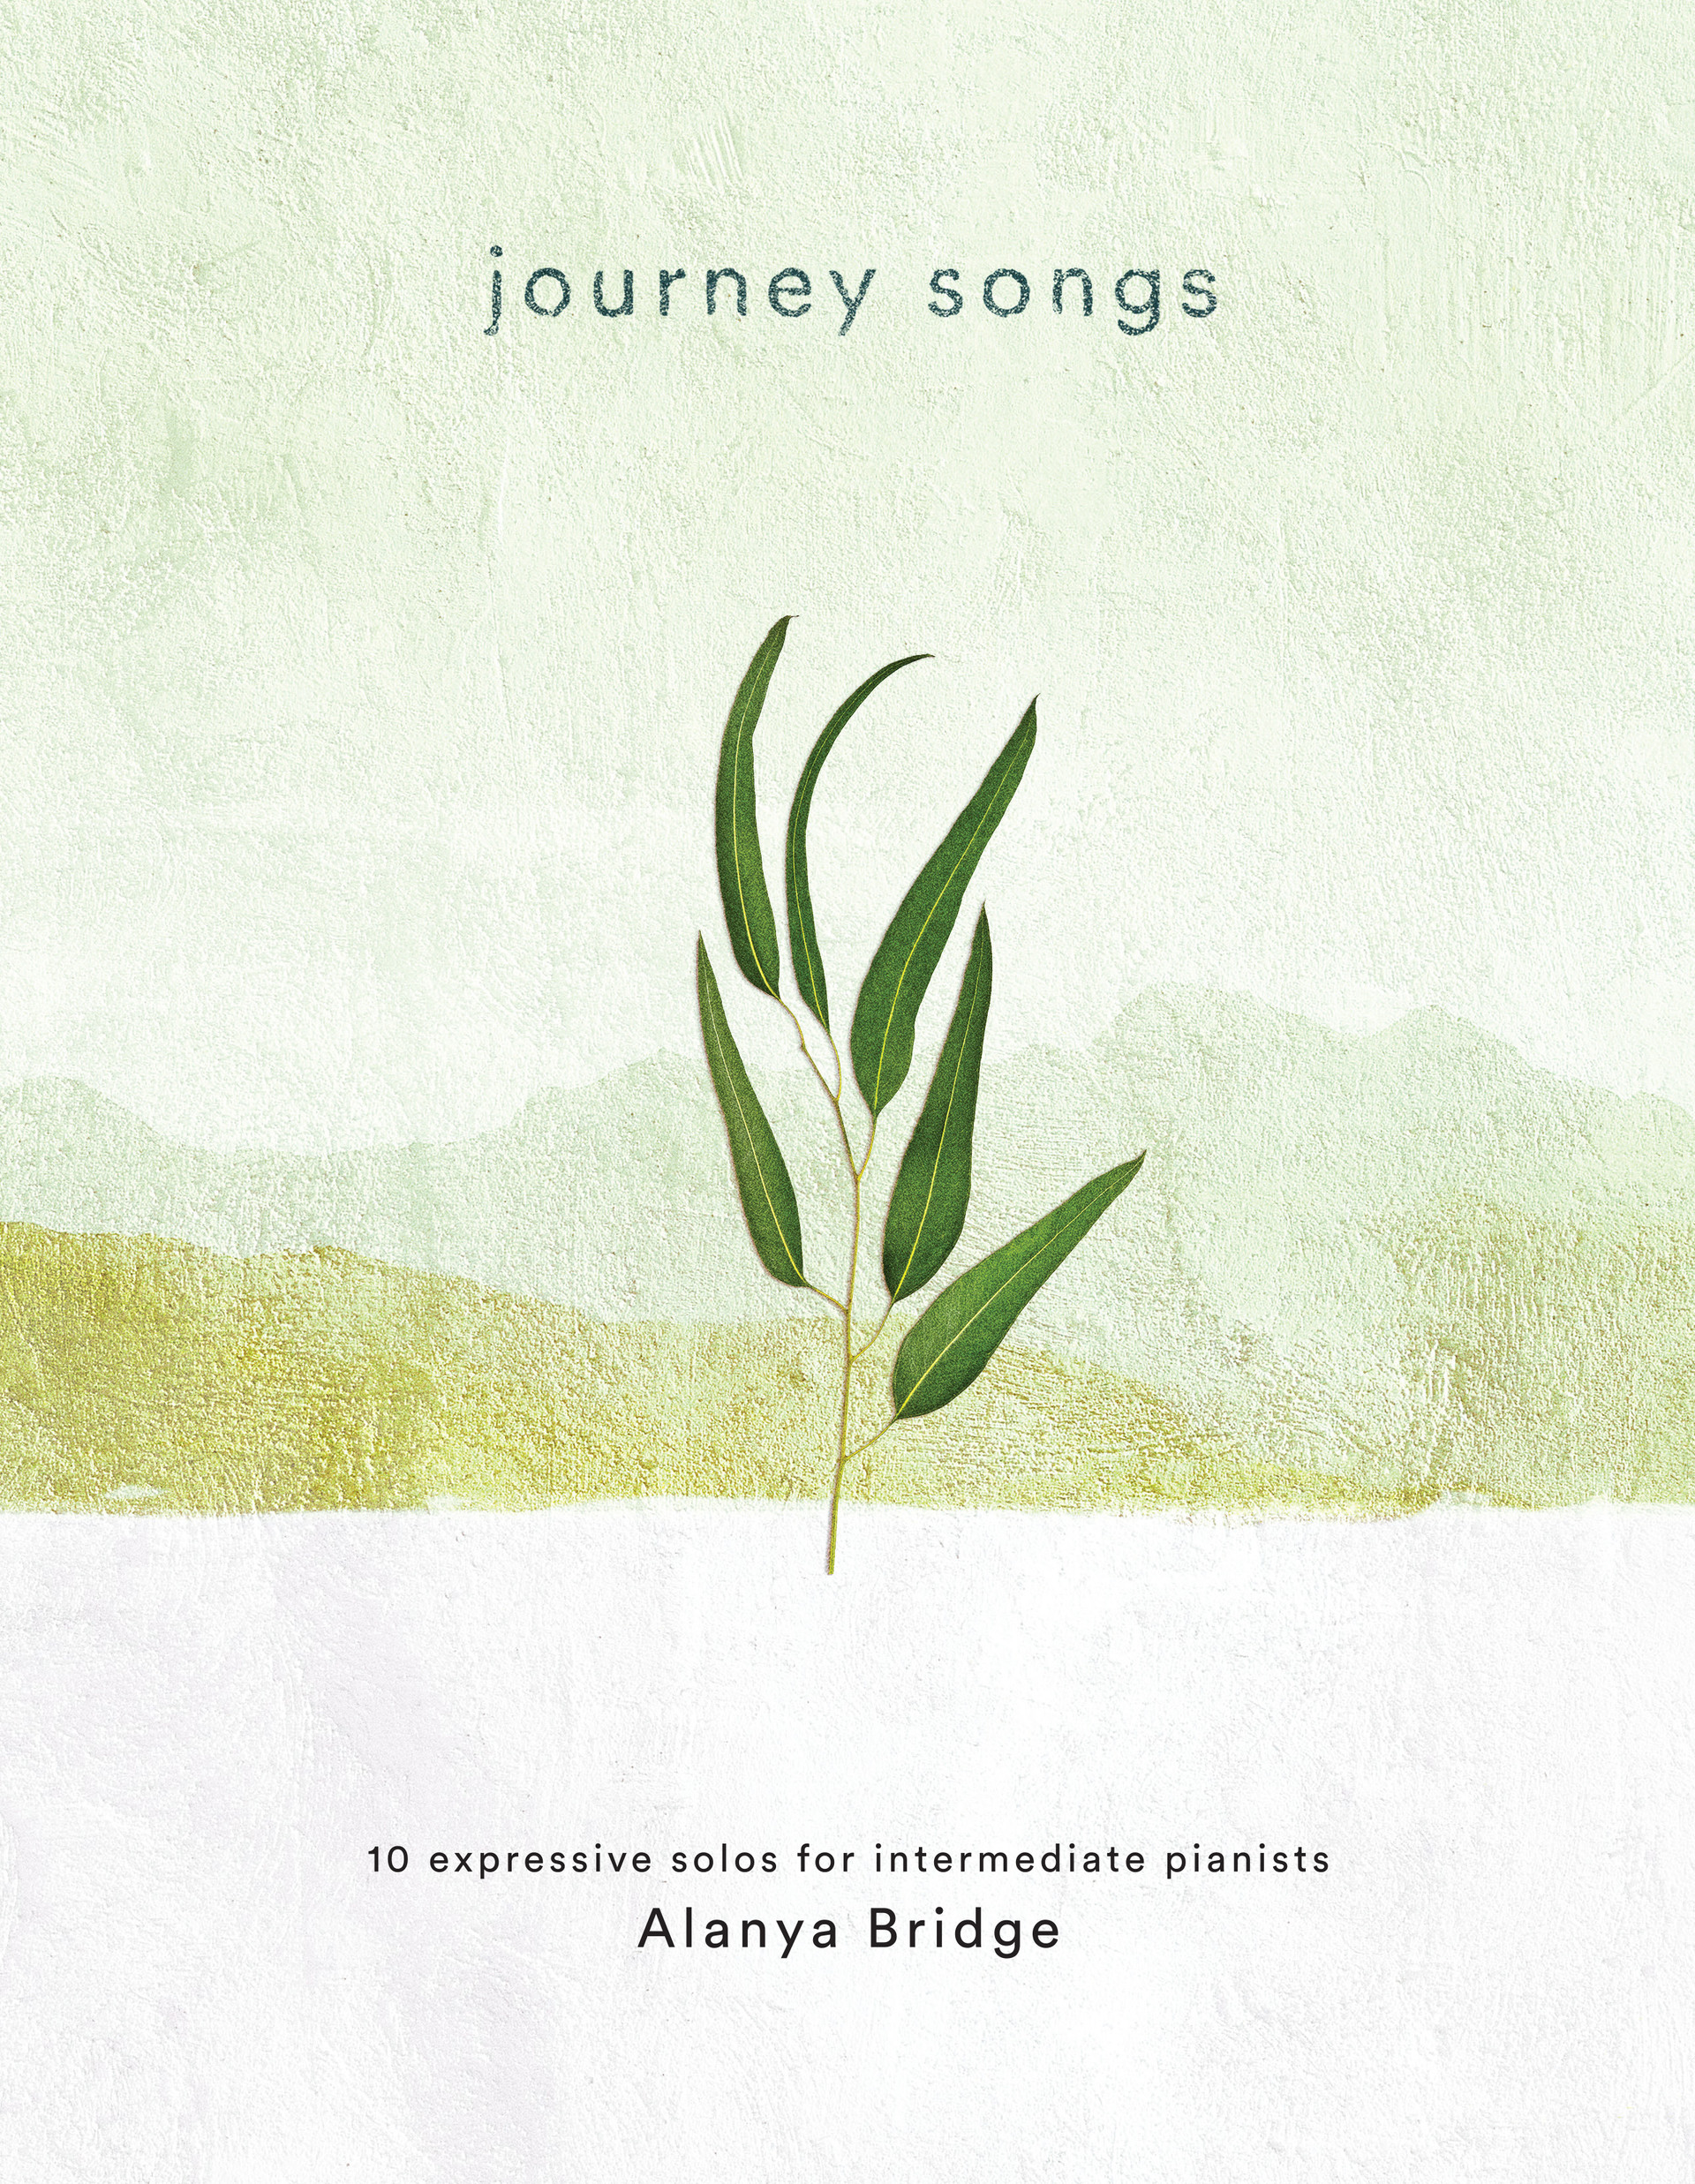 AB002_Journey Songs_Cover.jpg